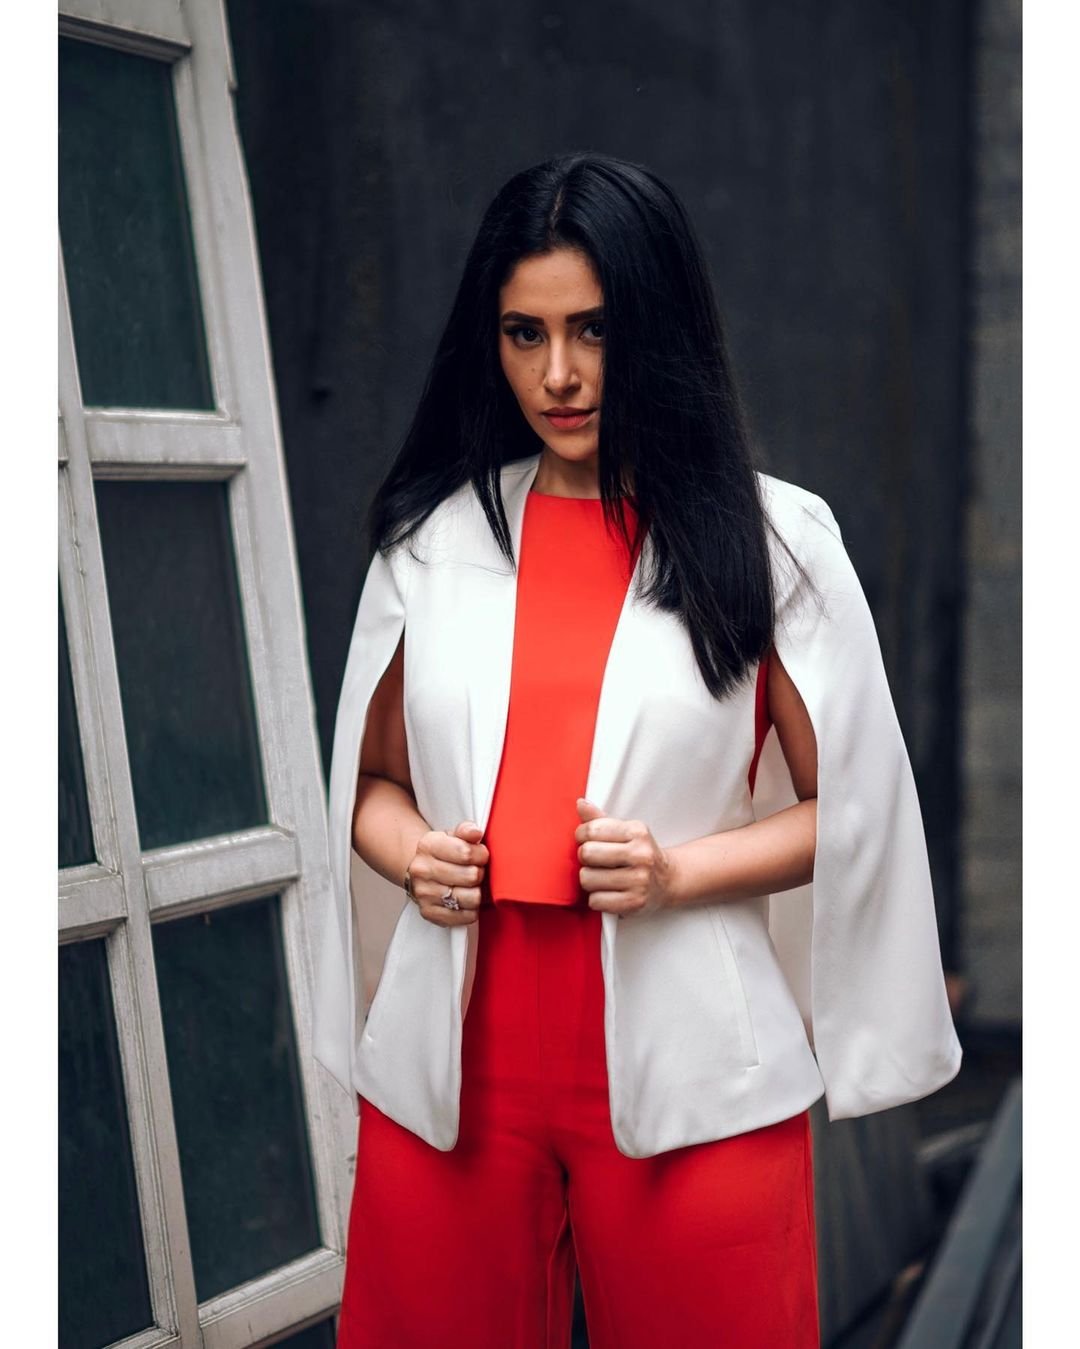 Bodycon or well-fit denim with shirt makes me feel 'sexy': Shubhaavi Choksey 2